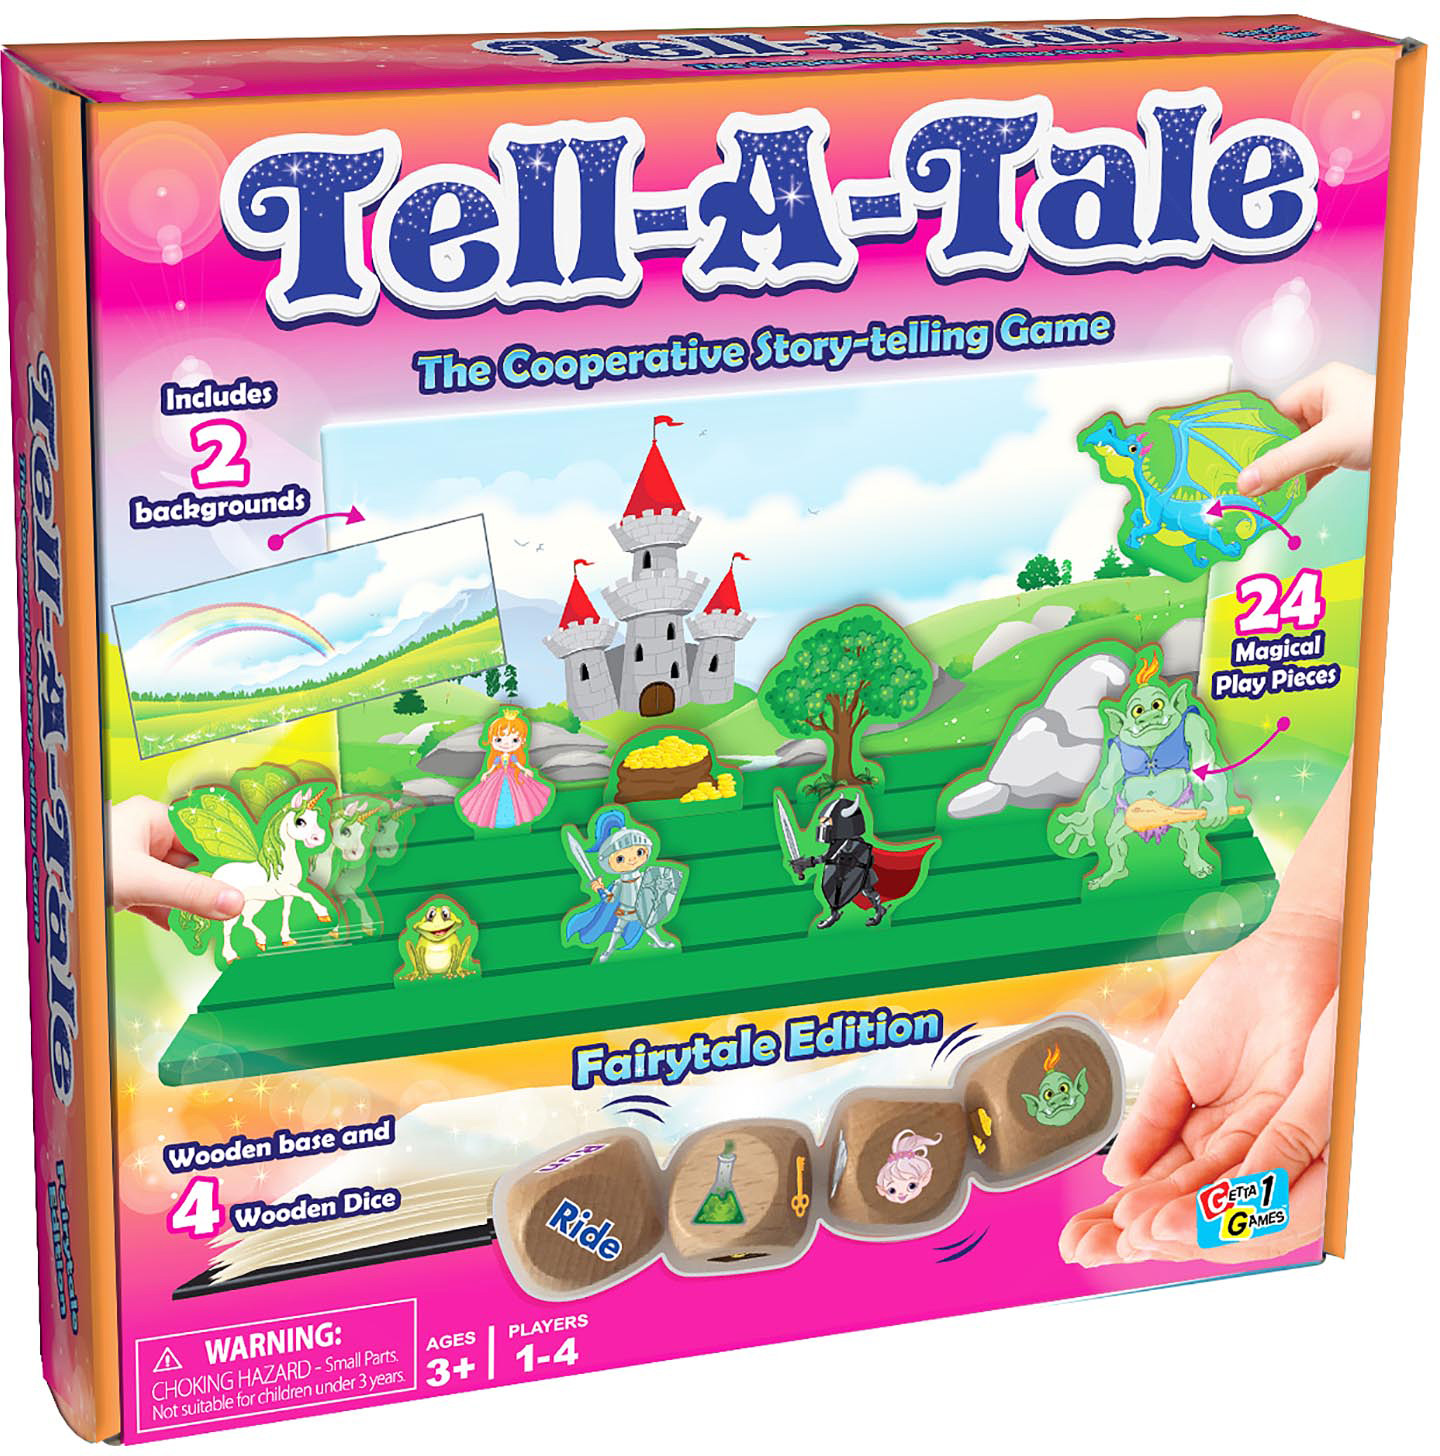 Tell a Tale (Fairytale Edition)